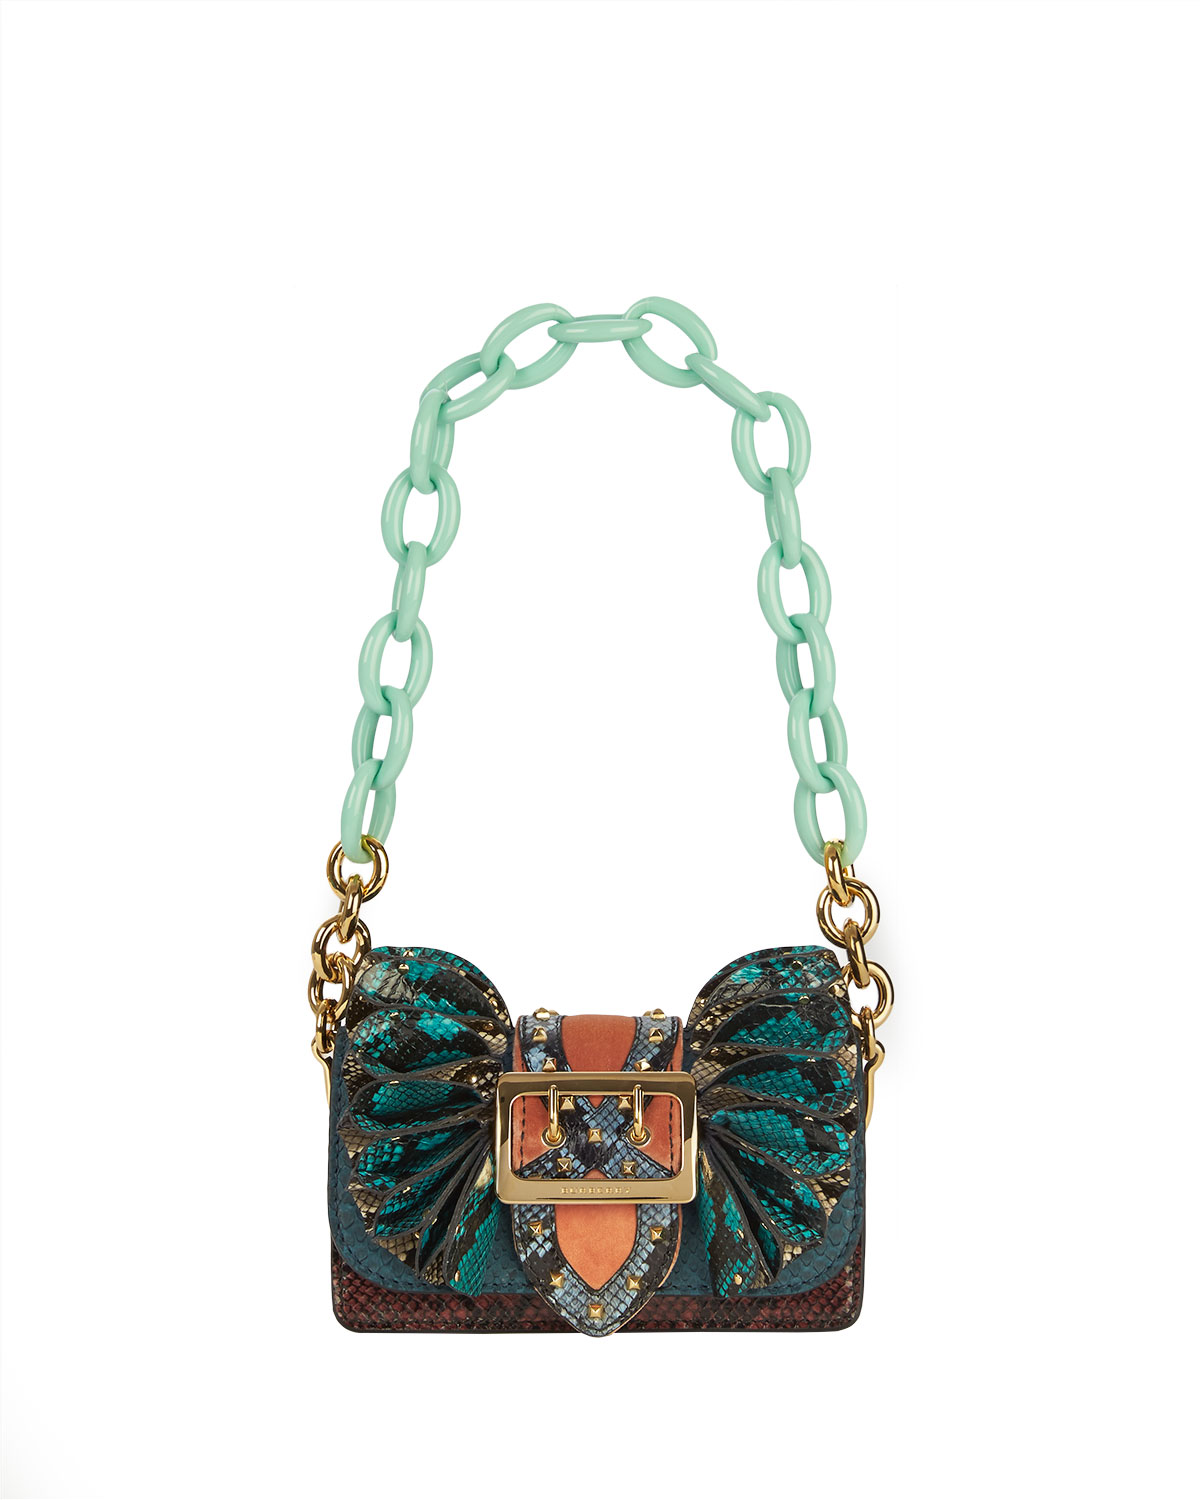 f1a8bd6a574 Burberry Bridle Baby Ruffled Snakeskin Shoulder Bag, Teal | Neiman ...